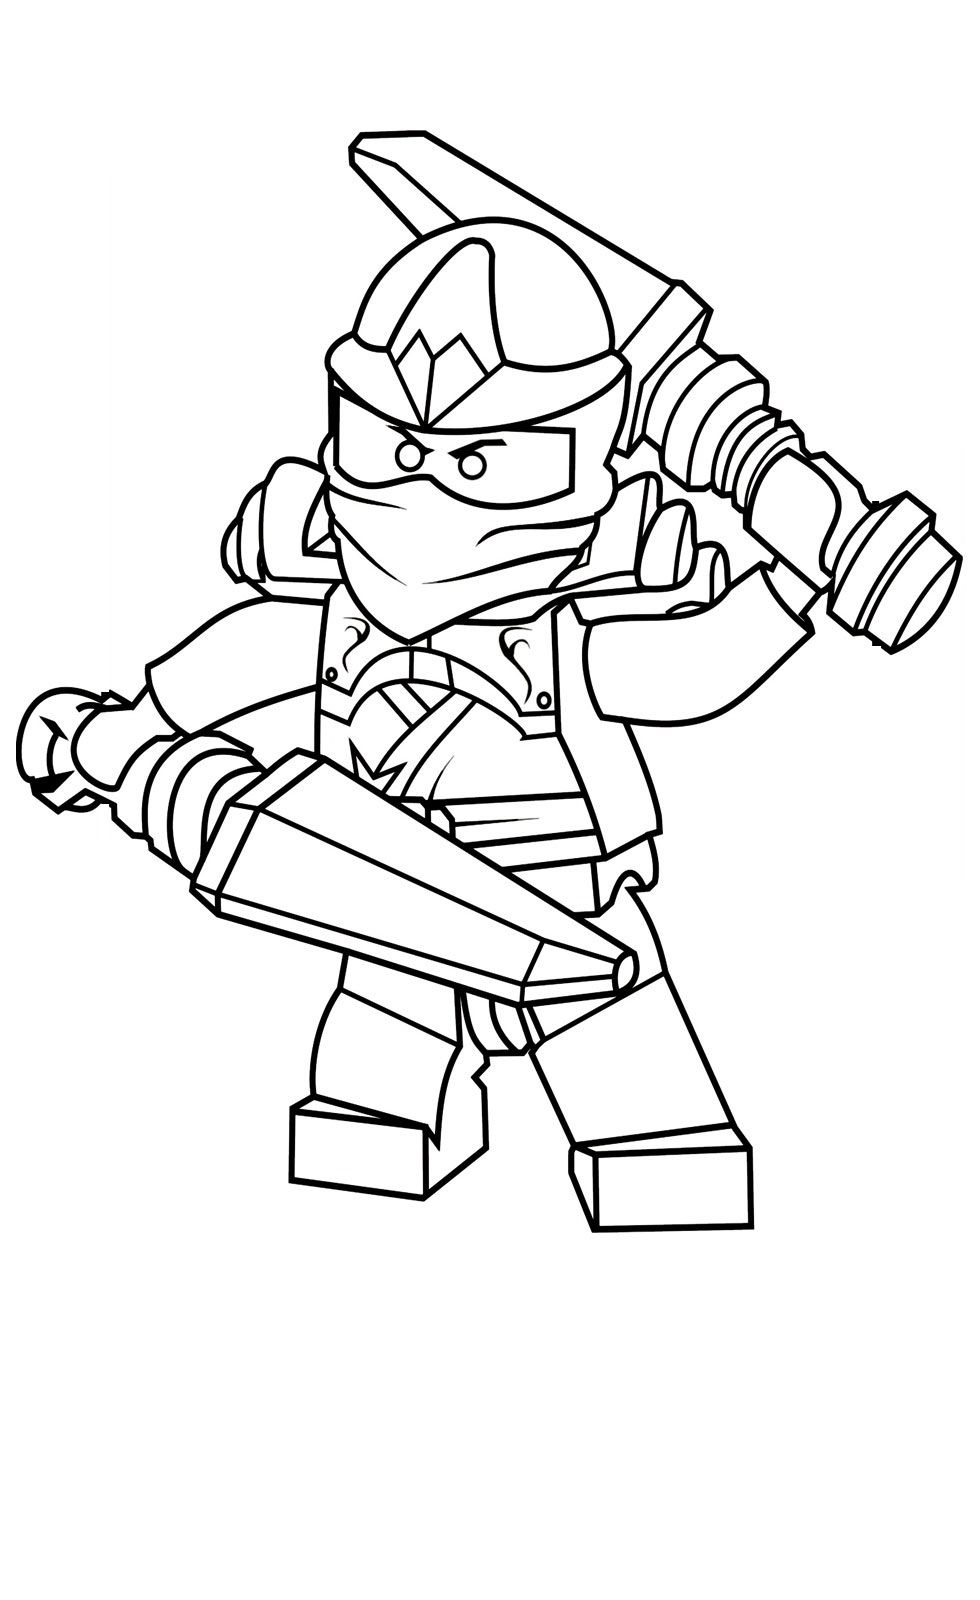 Free Printable Ninjago Coloring Pages For Kids Ninjago Coloring Pages Lego Coloring Pages Lego Movie Coloring Pages